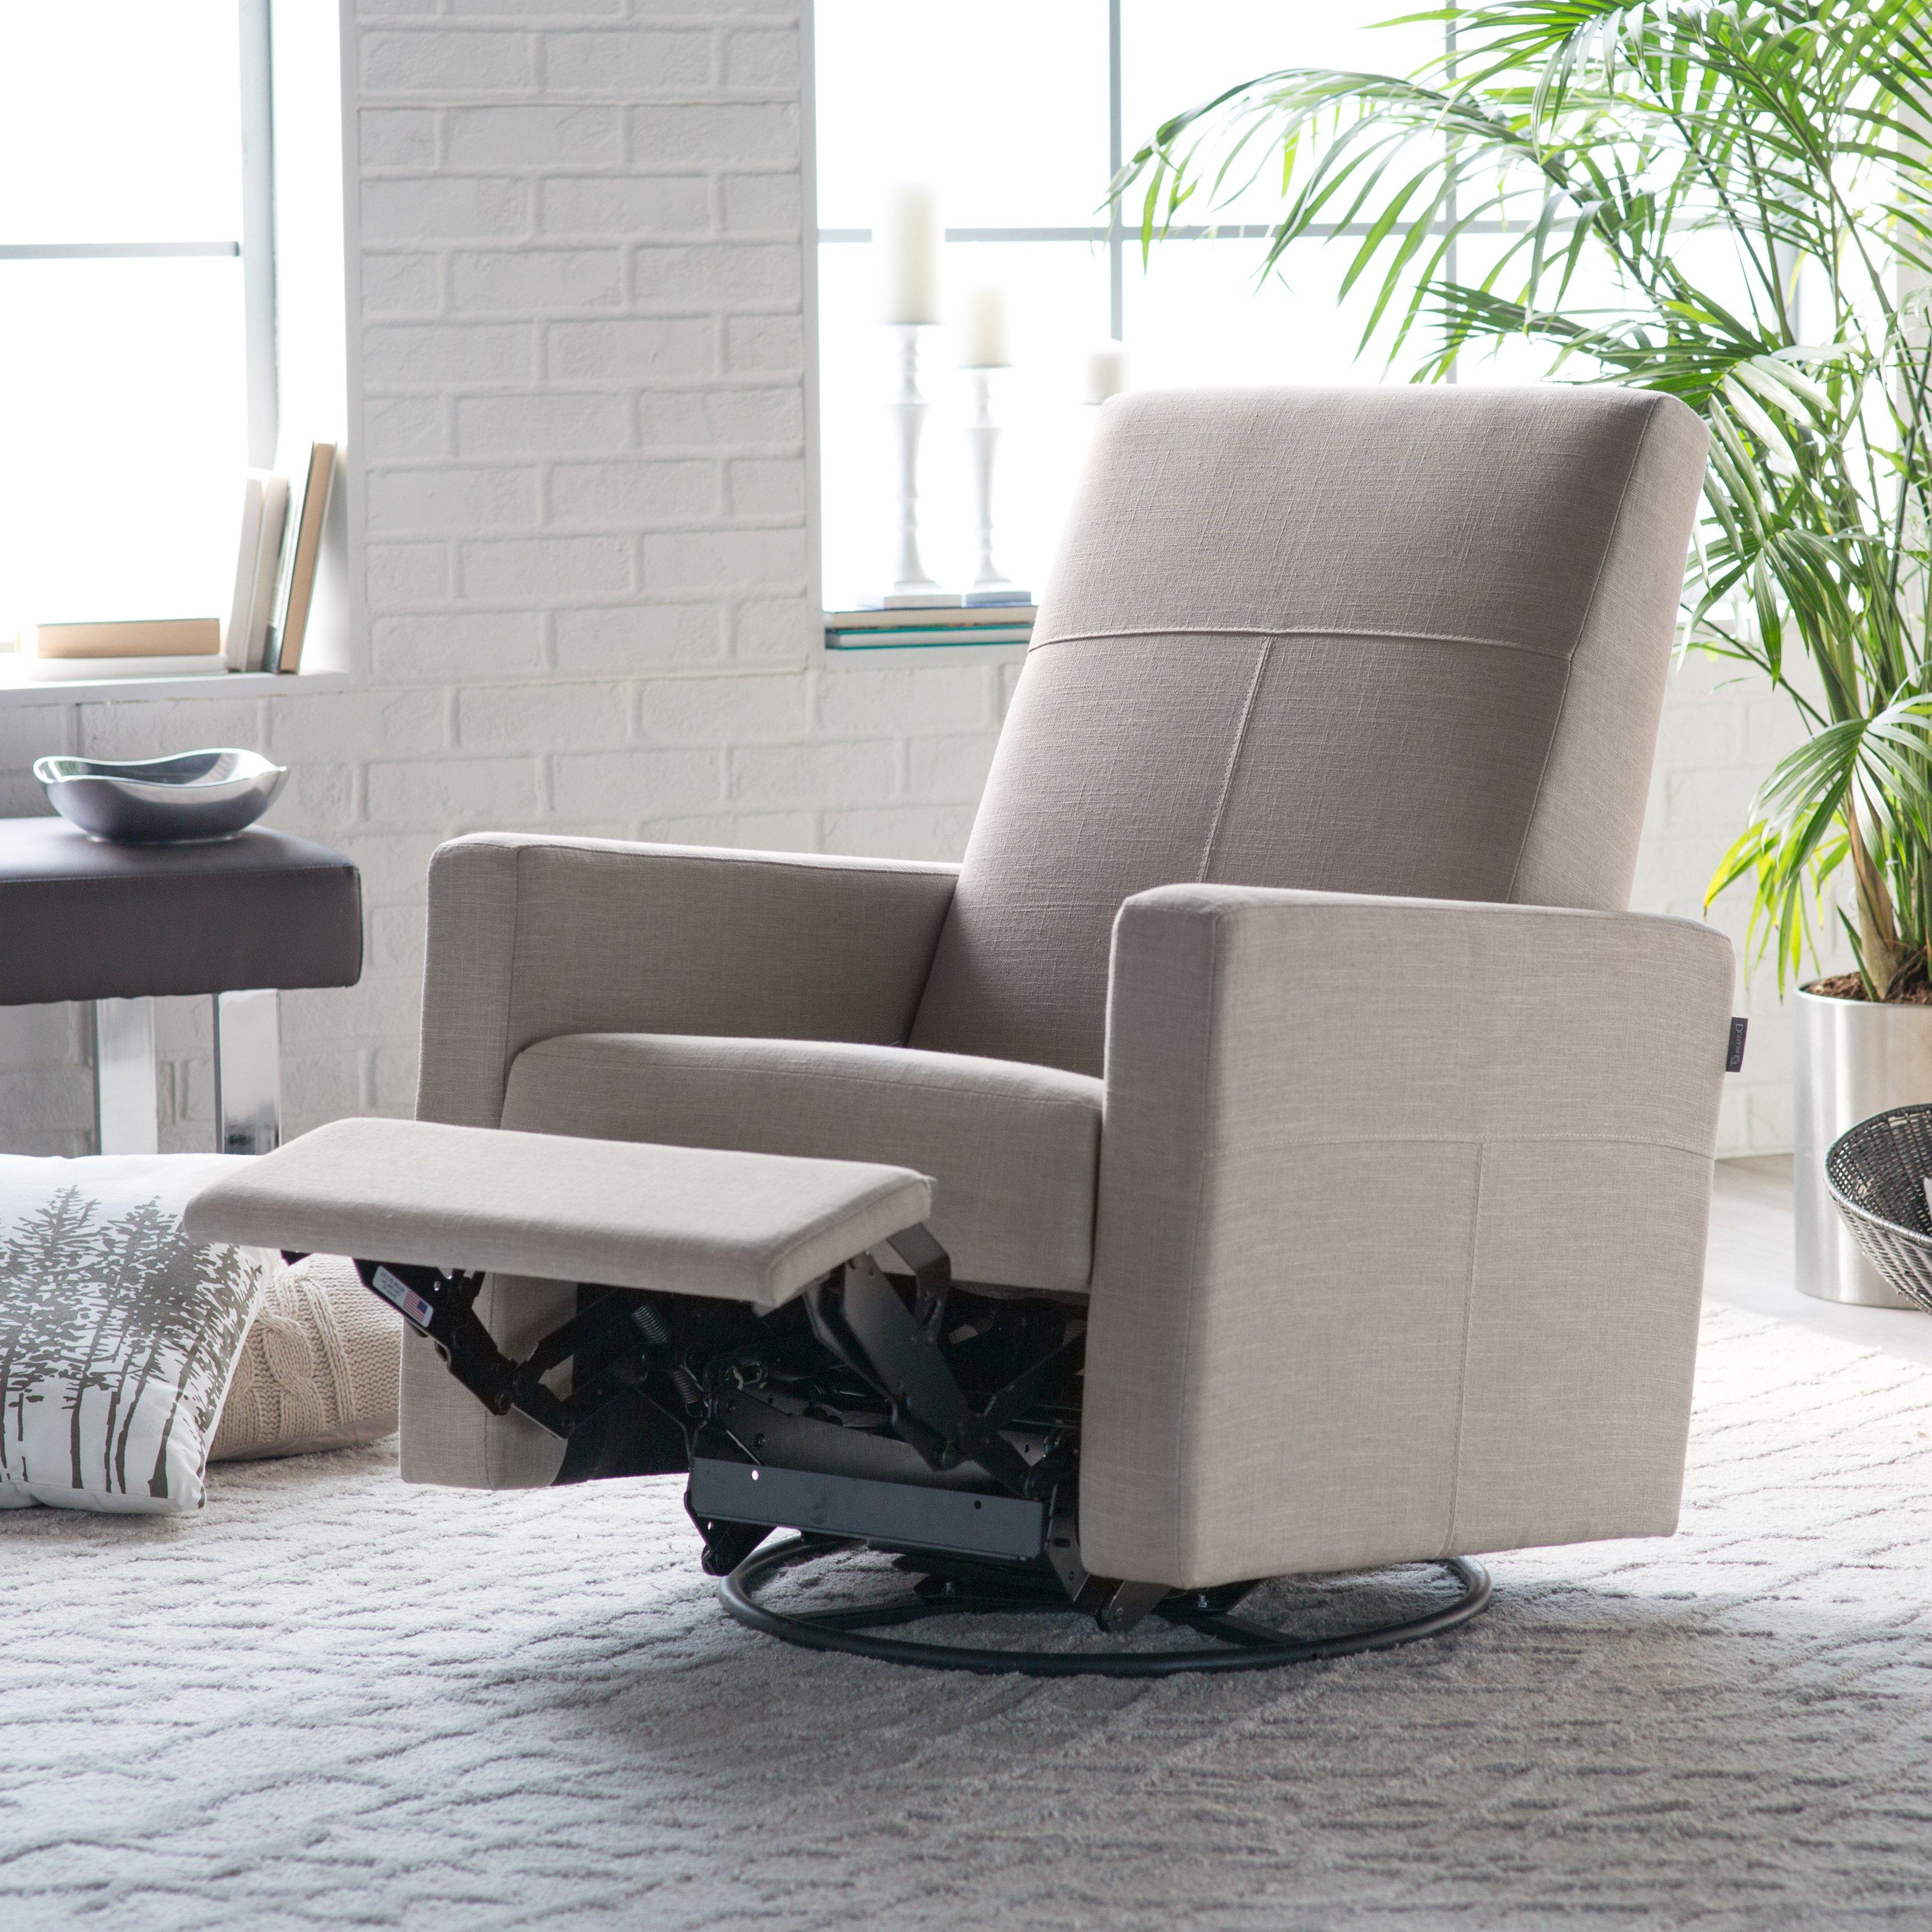 Favorite Furniture: Magnificent Walmart Glider Rocker For Fabulous Home Regarding Abbey Swivel Glider Recliners (View 15 of 20)